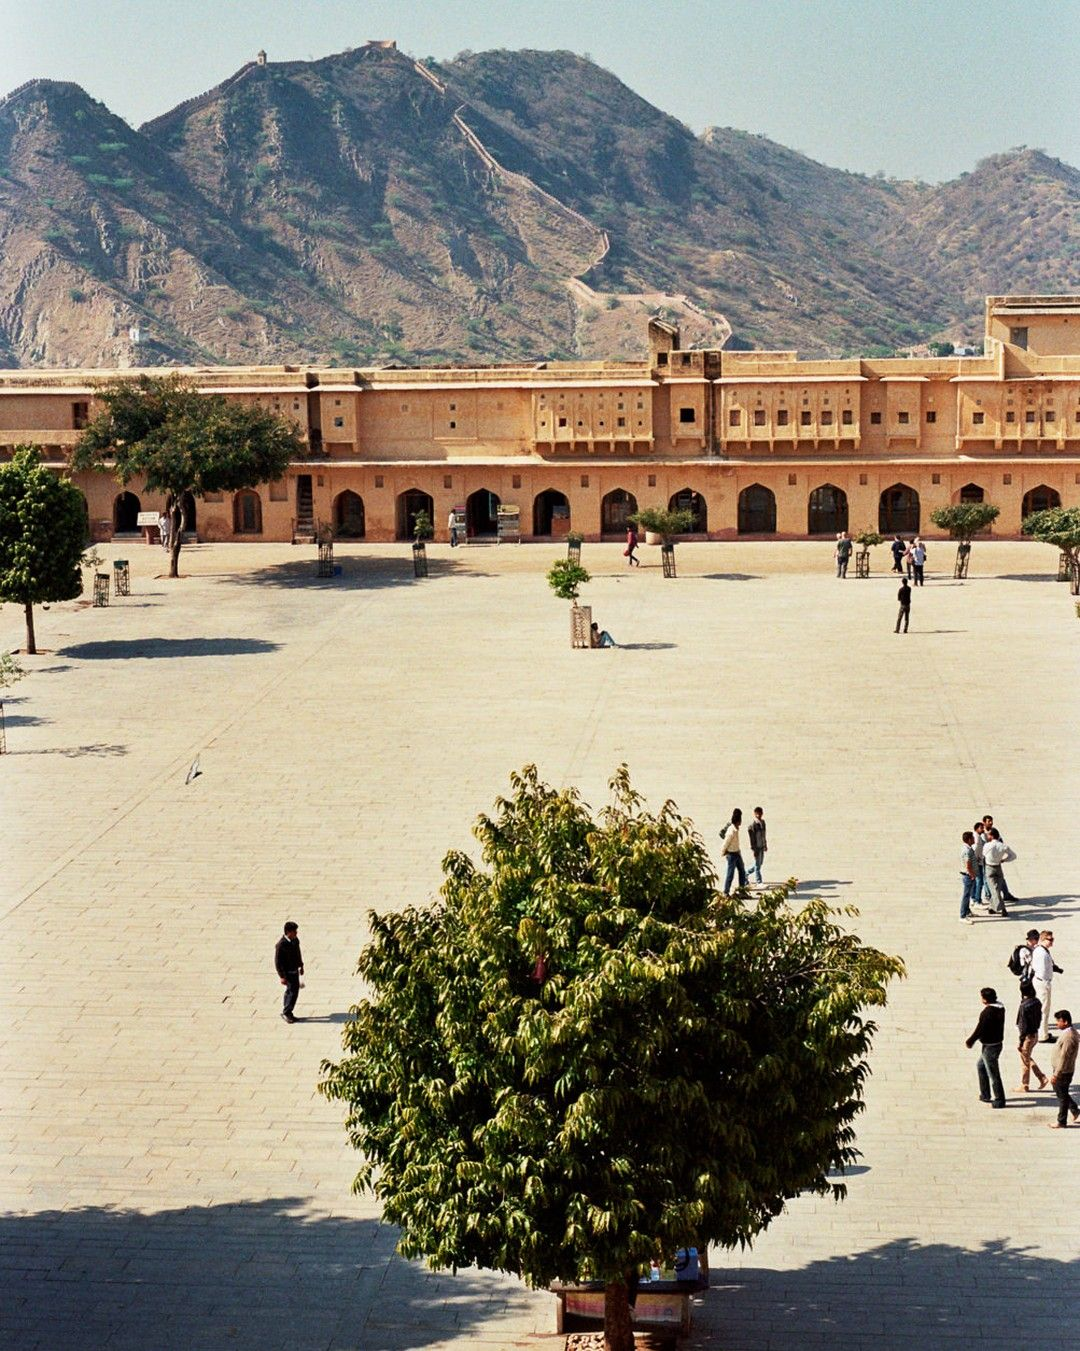 Rajasthan, India 2013 #35mm Fine art prints available